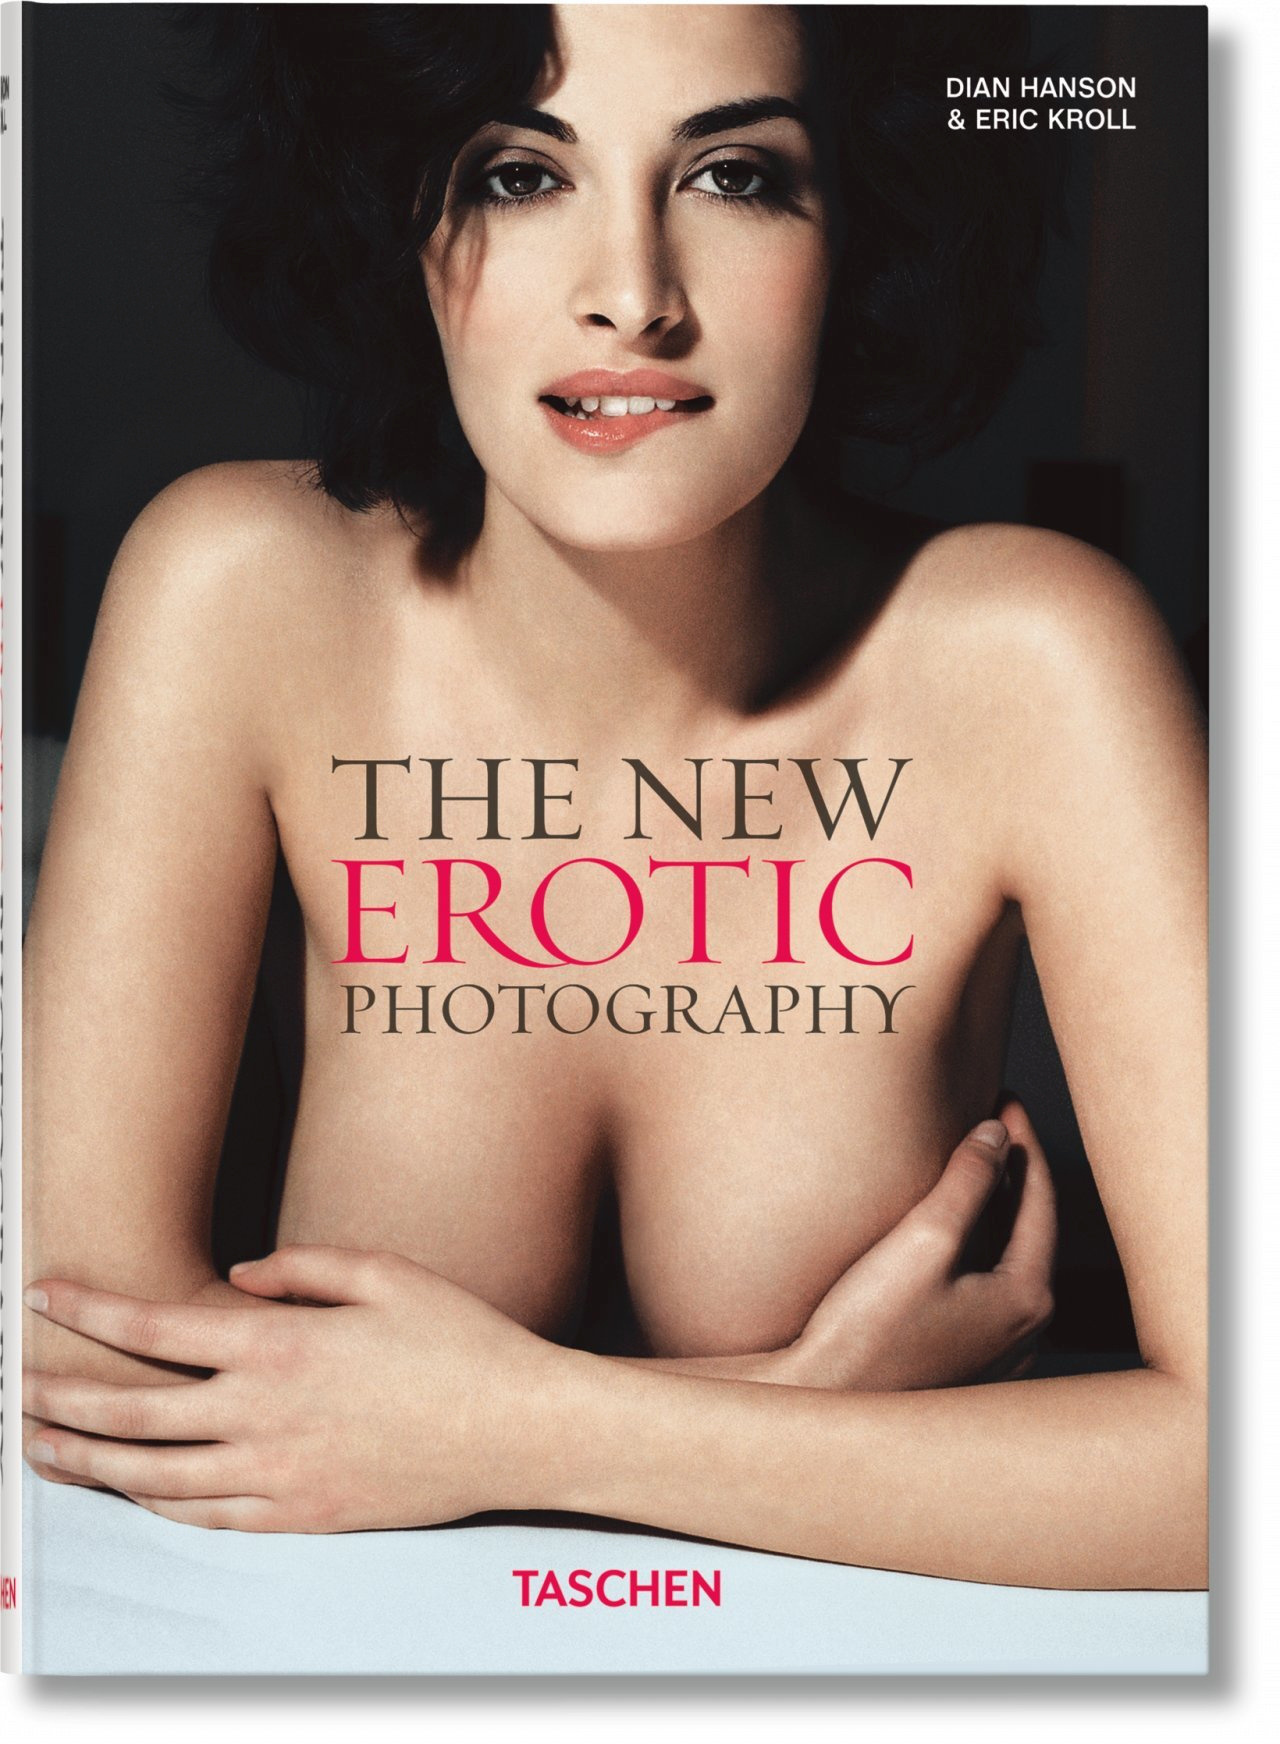 VA-25 NEW EROTIC PHOTOGRAPHY 1